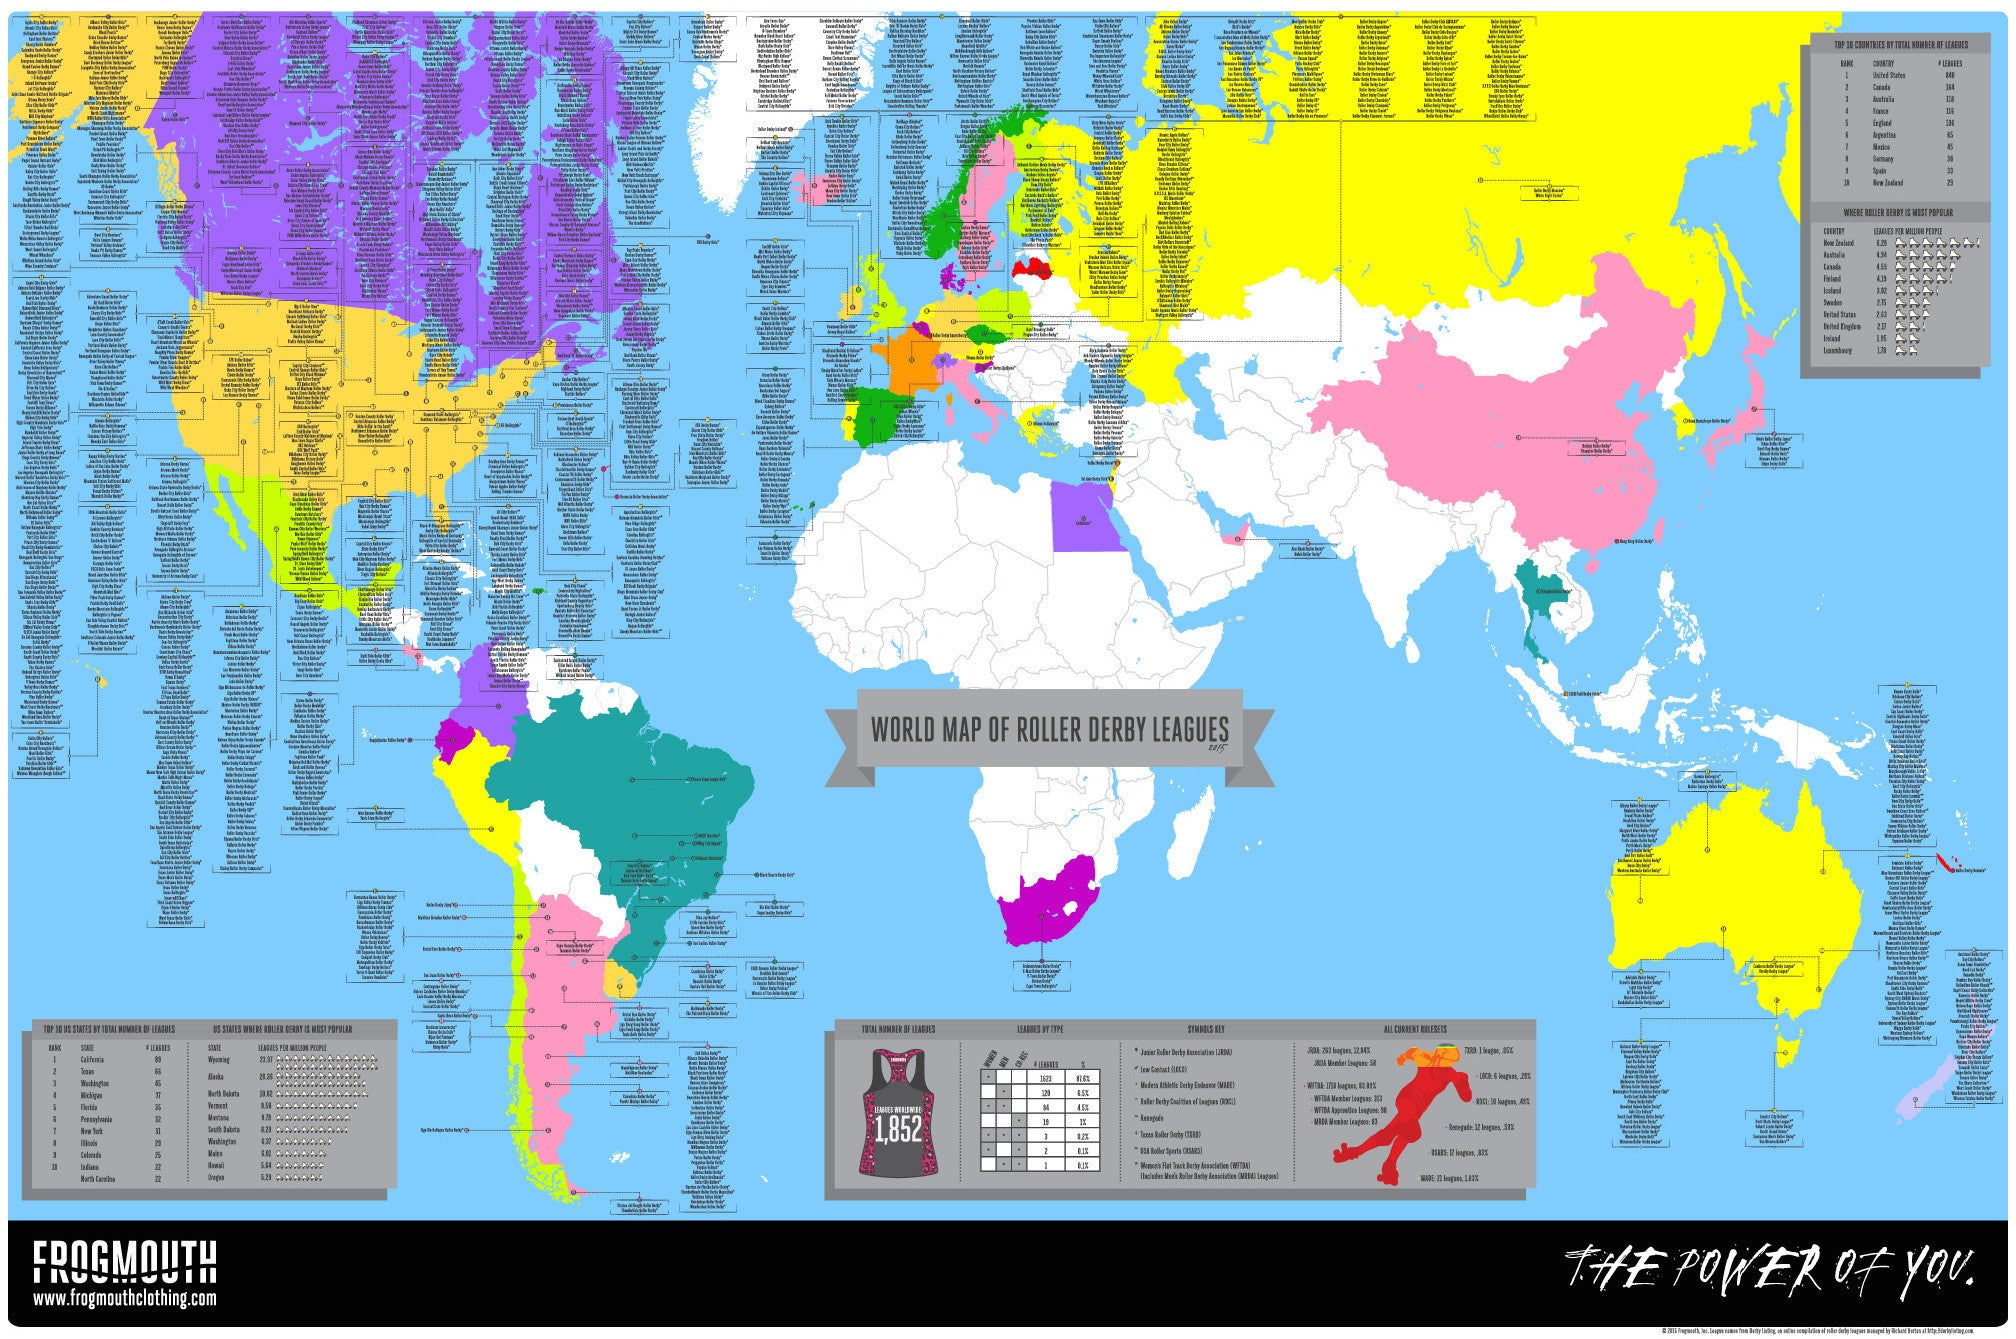 The world map of roller derby leagues frogmouth our map of roller derby leagues get a poster here see it in high resolution here sciox Images